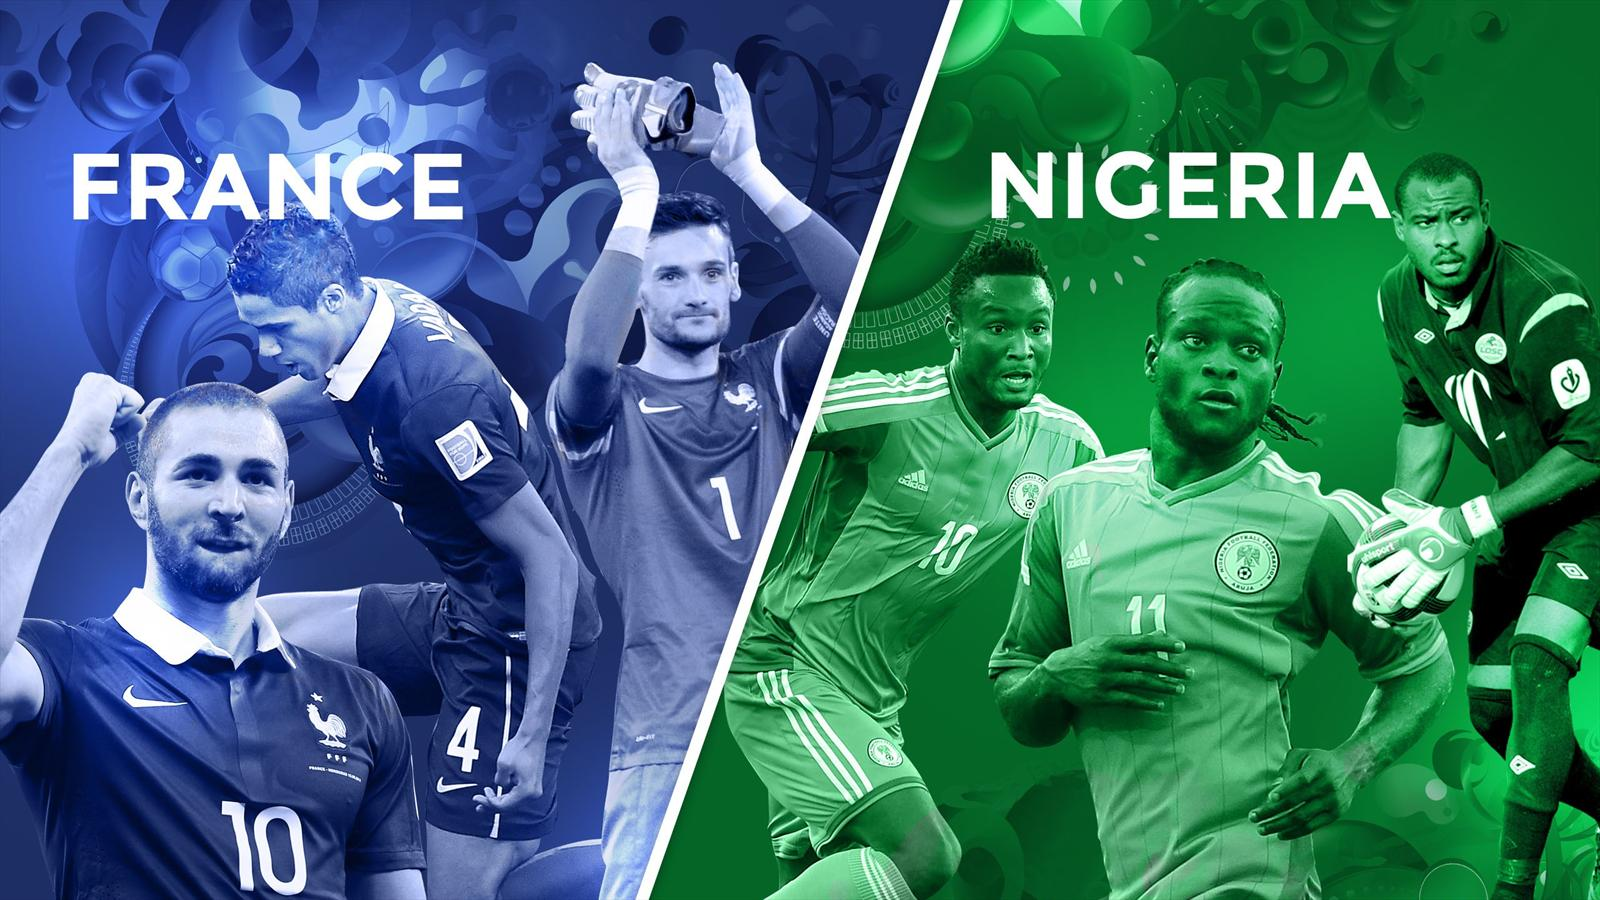 France-Nigeria (2-0) : Pourquoi la France n'a pas réussi à dominer ?